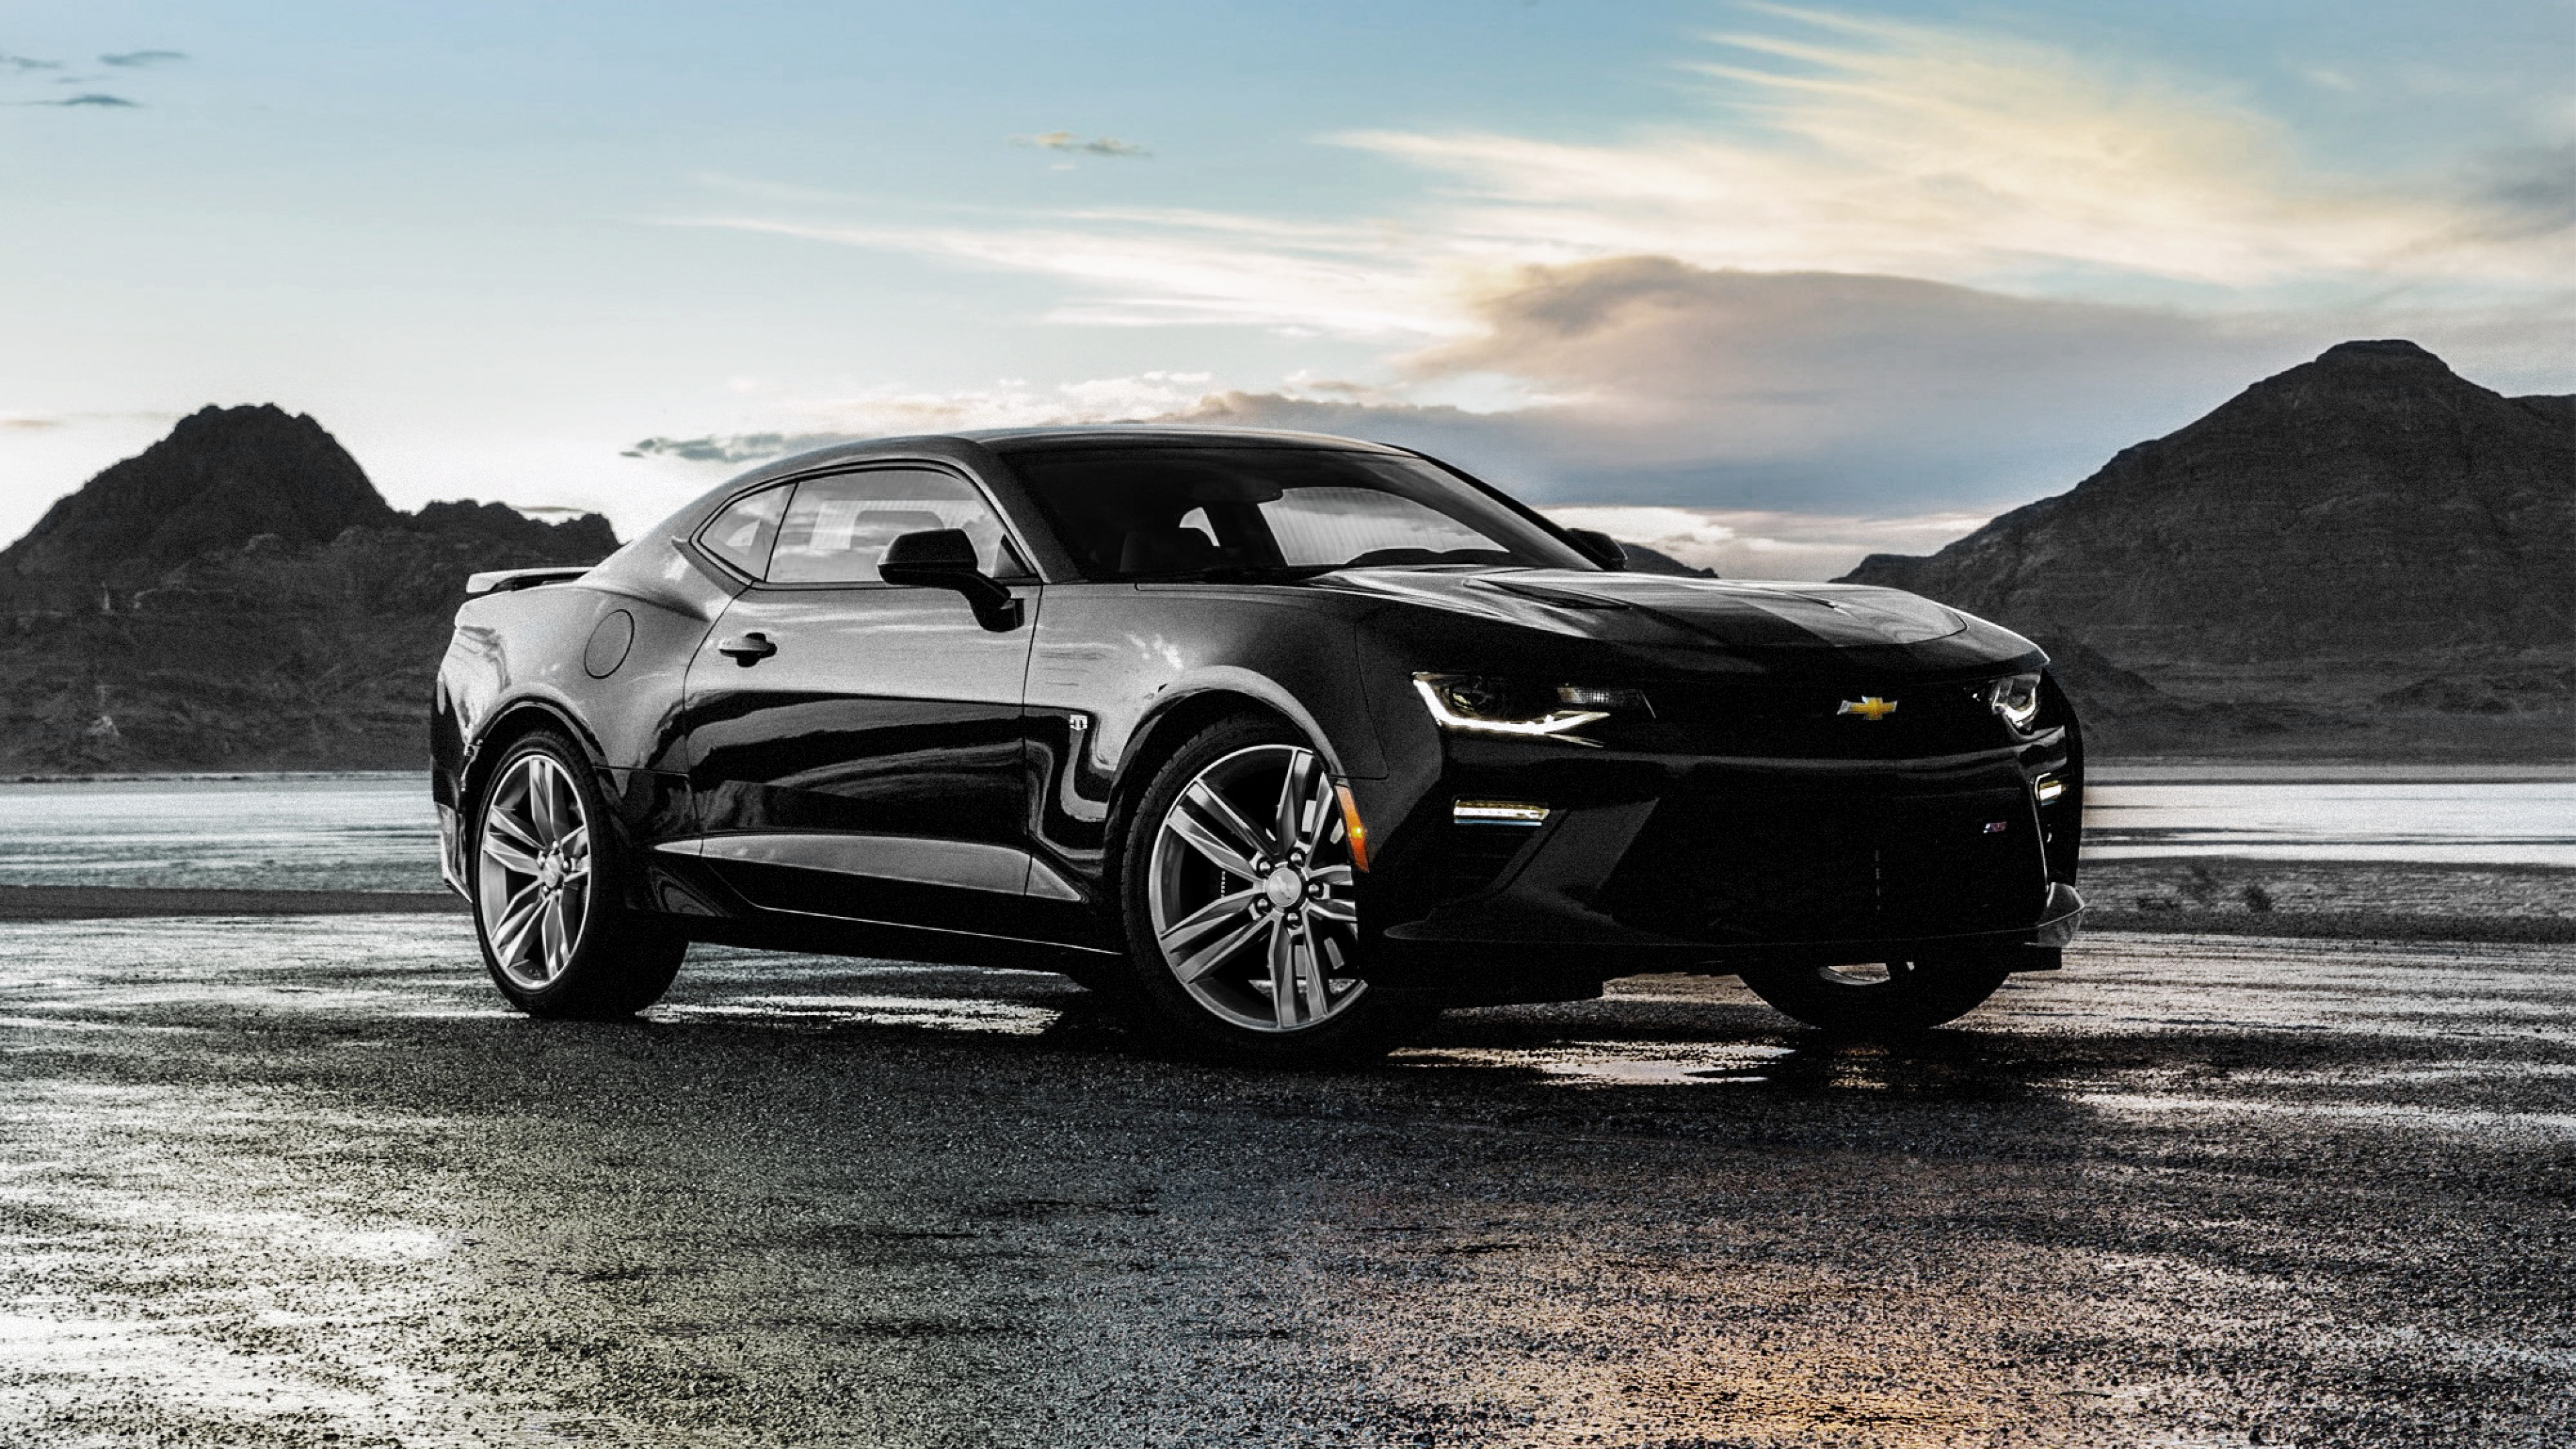 Chevrolet Camaro Ss Black Hd Cars 4k Wallpapers Images